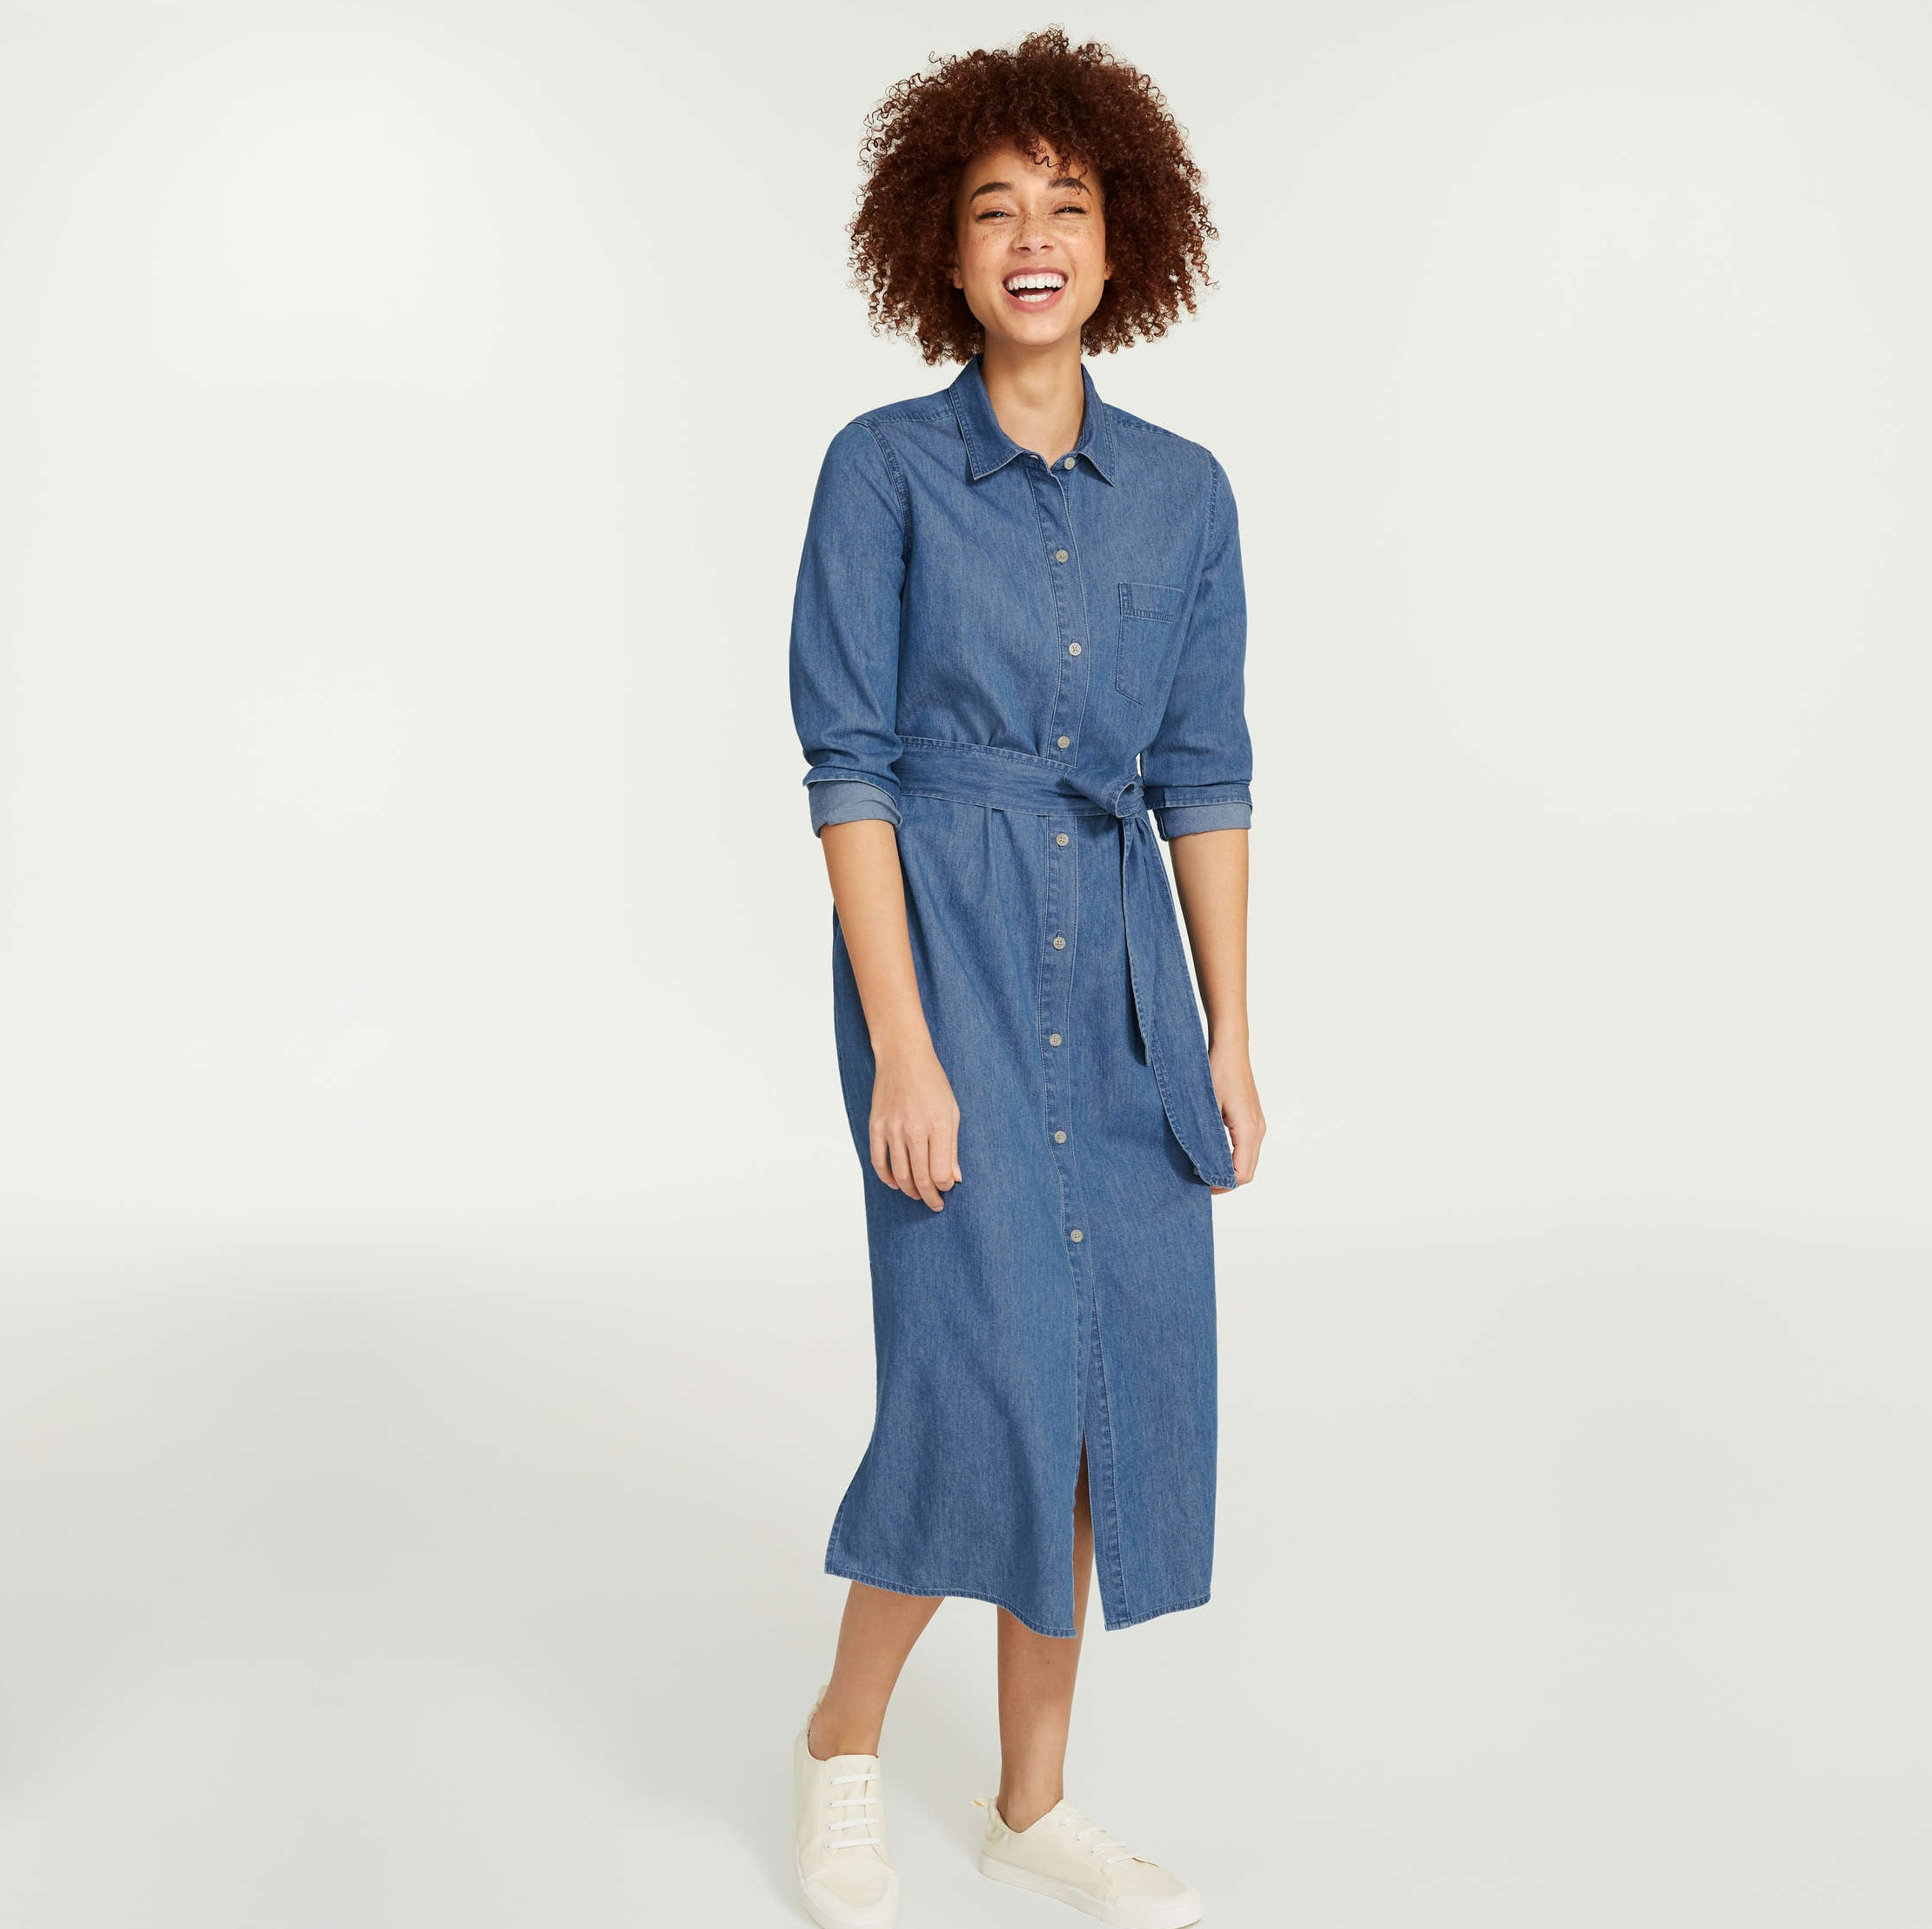 A person wearing a long denim shirtdress with rolled up sleeves